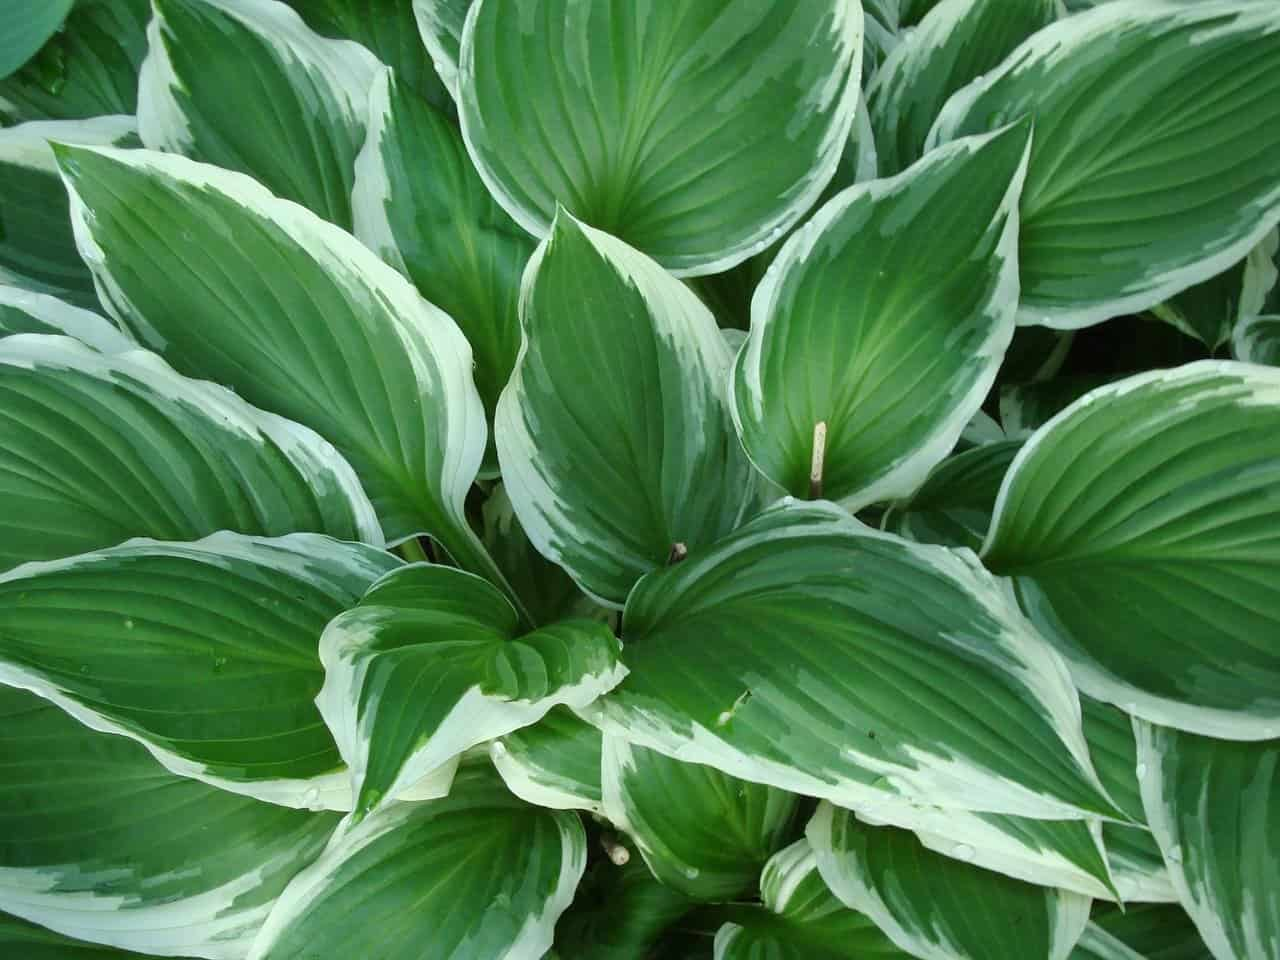 What eats hostas? Is it animals or insects?